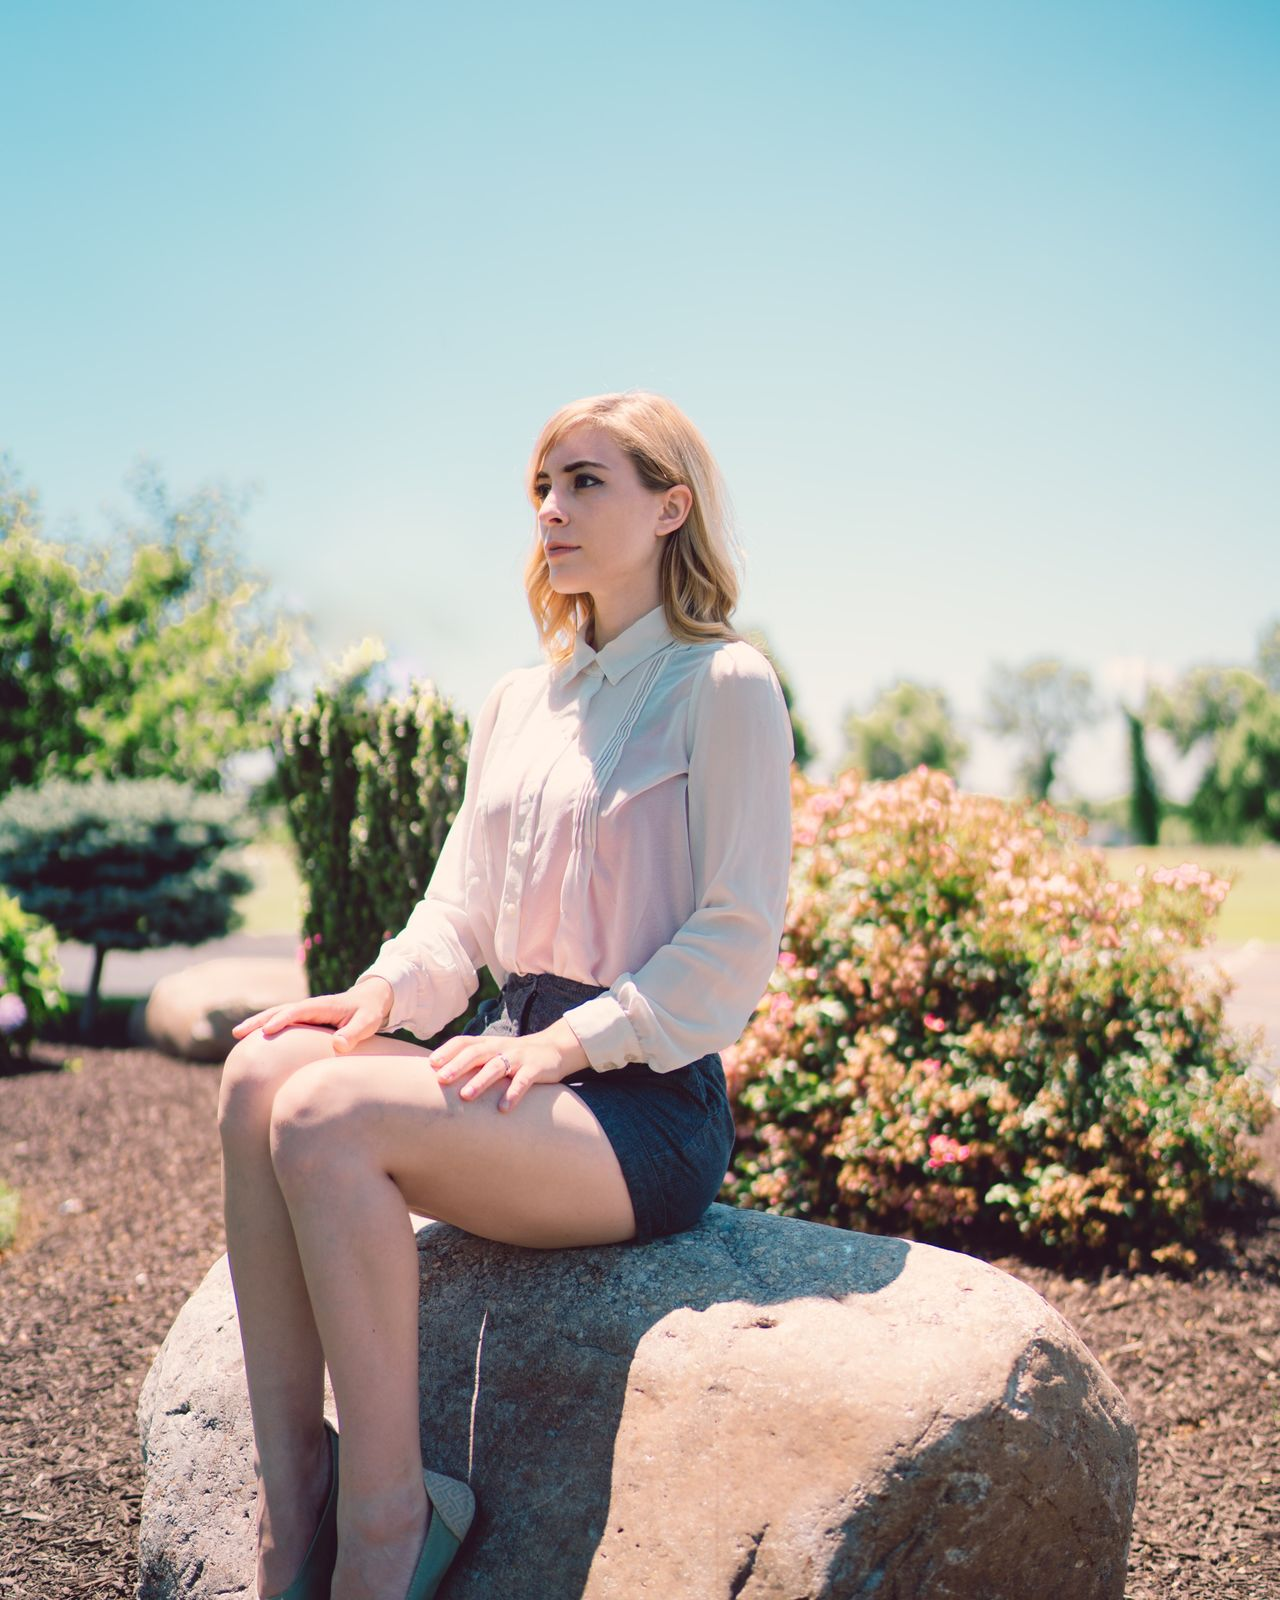 Sitting Only Women One Woman Only One Person Casual Clothing Adults Only Young Adult Blond Hair One Young Woman Only Adult People Beautiful Woman Outdoors Relaxation Day Young Women Sky Full Length Women Nature